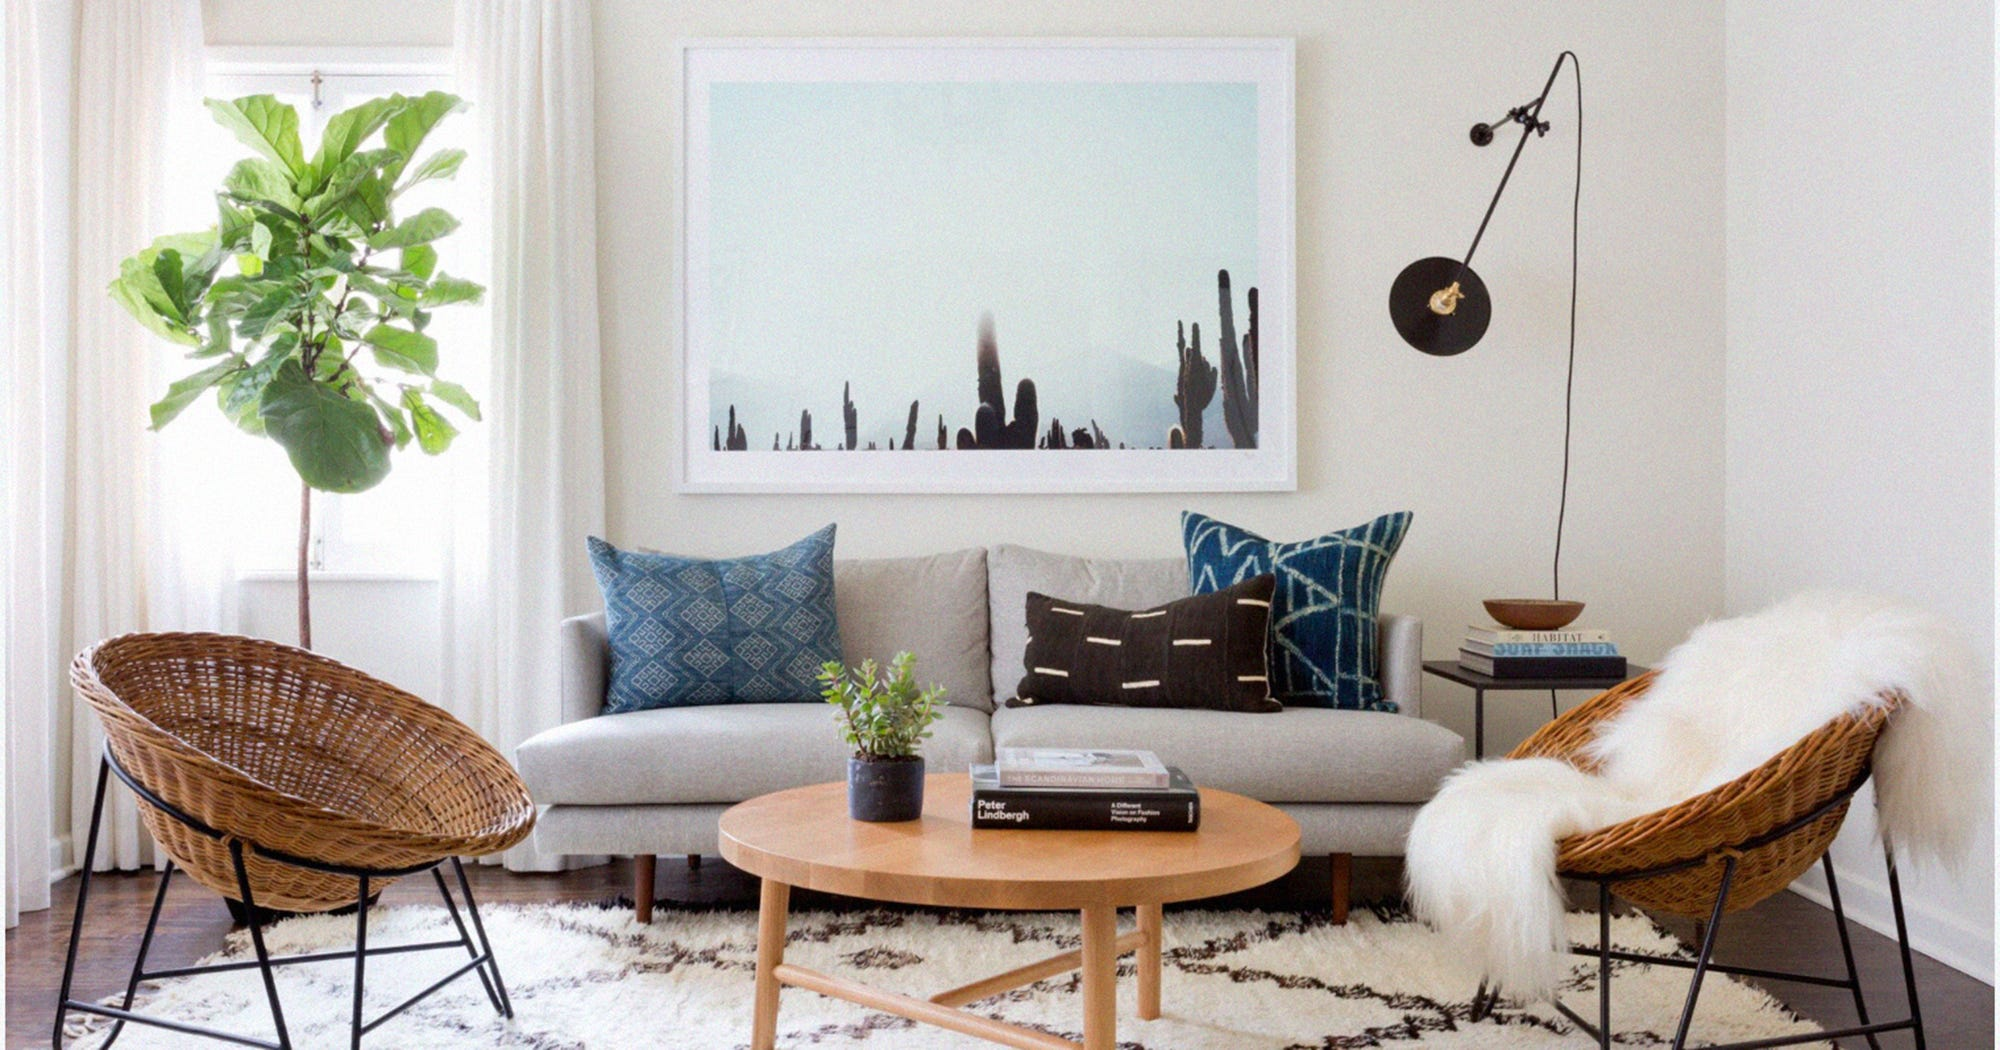 The 7 Small Space Mistakes You Don't Realise You're Making — & How To Avoid Them